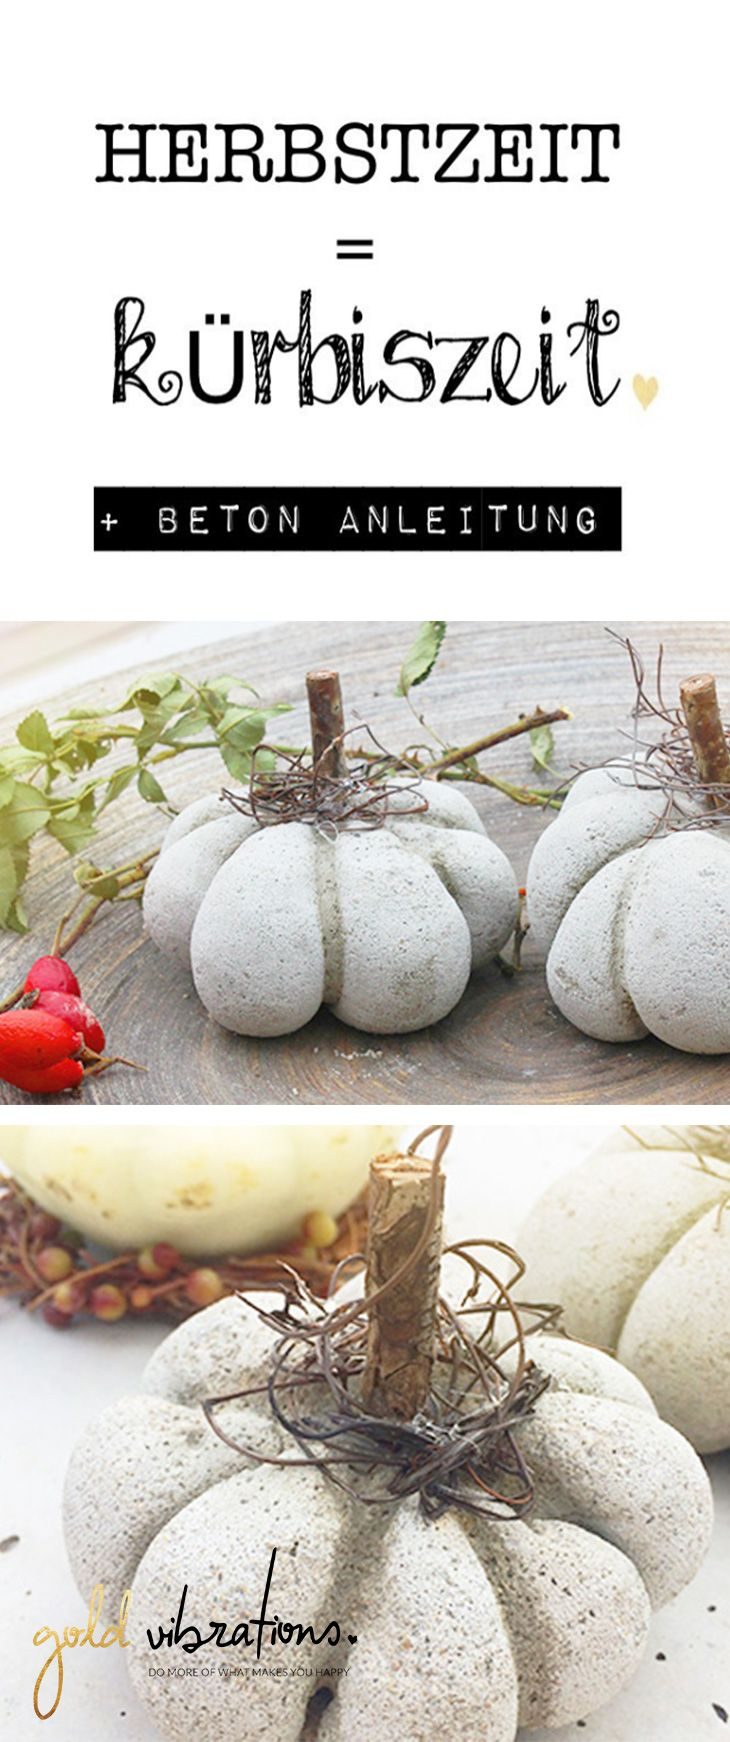 17 best ideas about betonieren on pinterest | beton diy, Hause und Garten